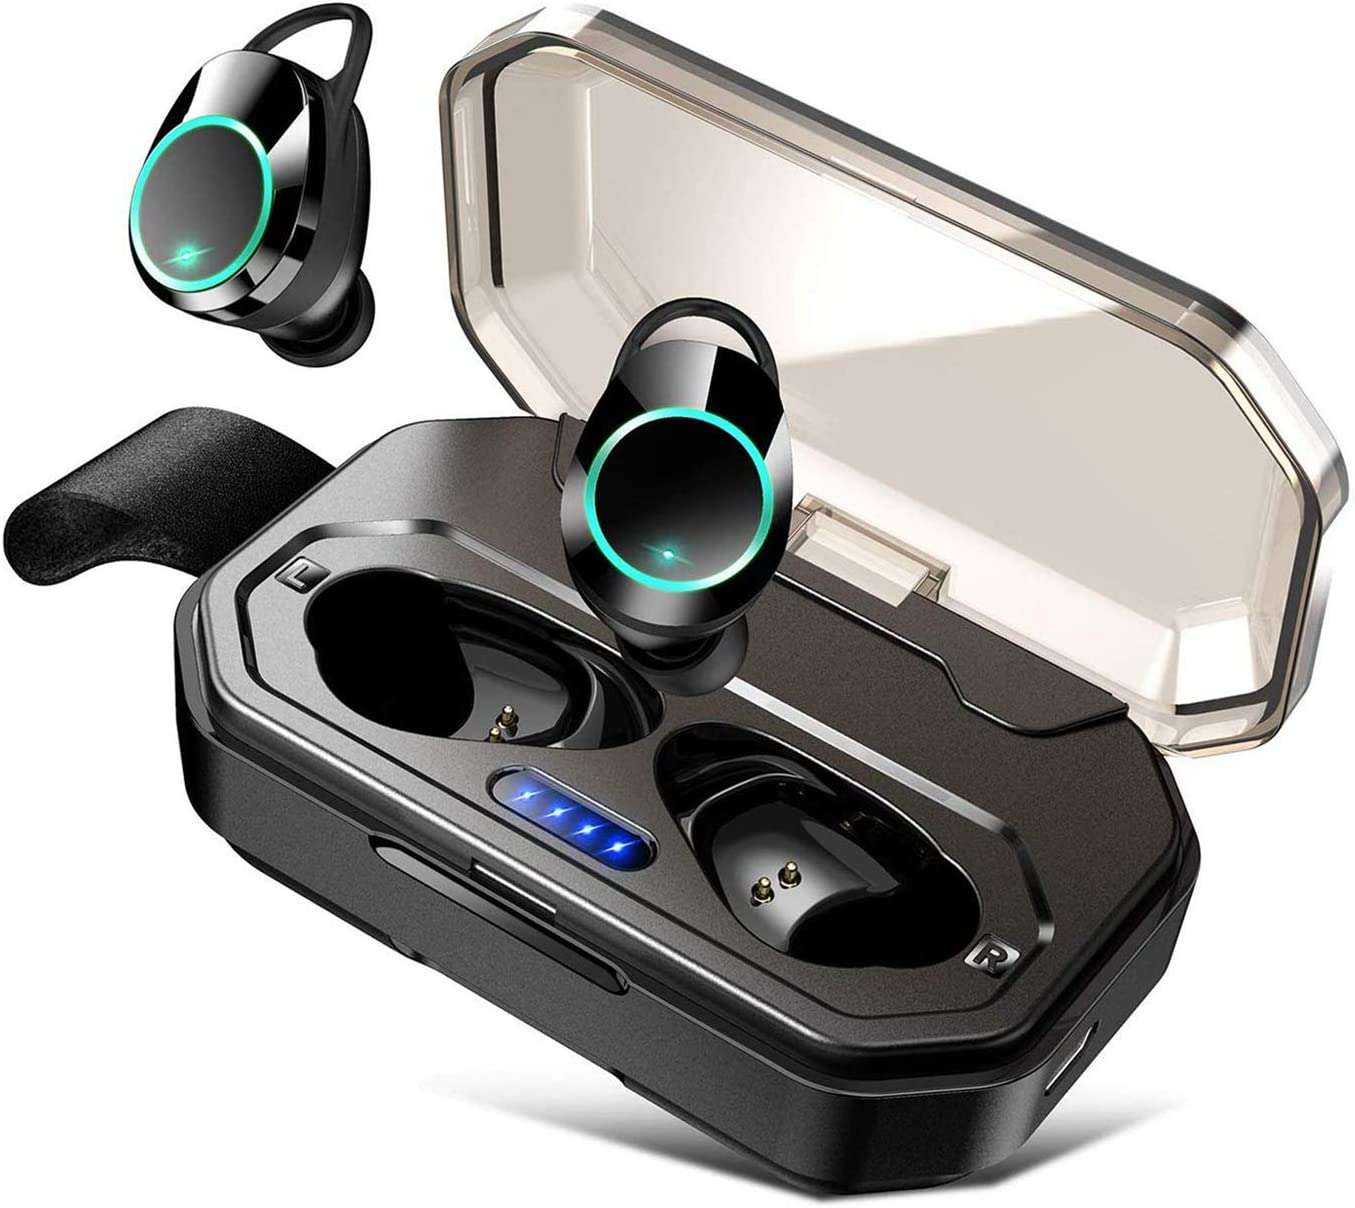 Bluetooth 5.0 Wireless Headphones, IPX7 Waterproof for Sport One-Key Control Hi-Fi Sound Quality Stable Connection